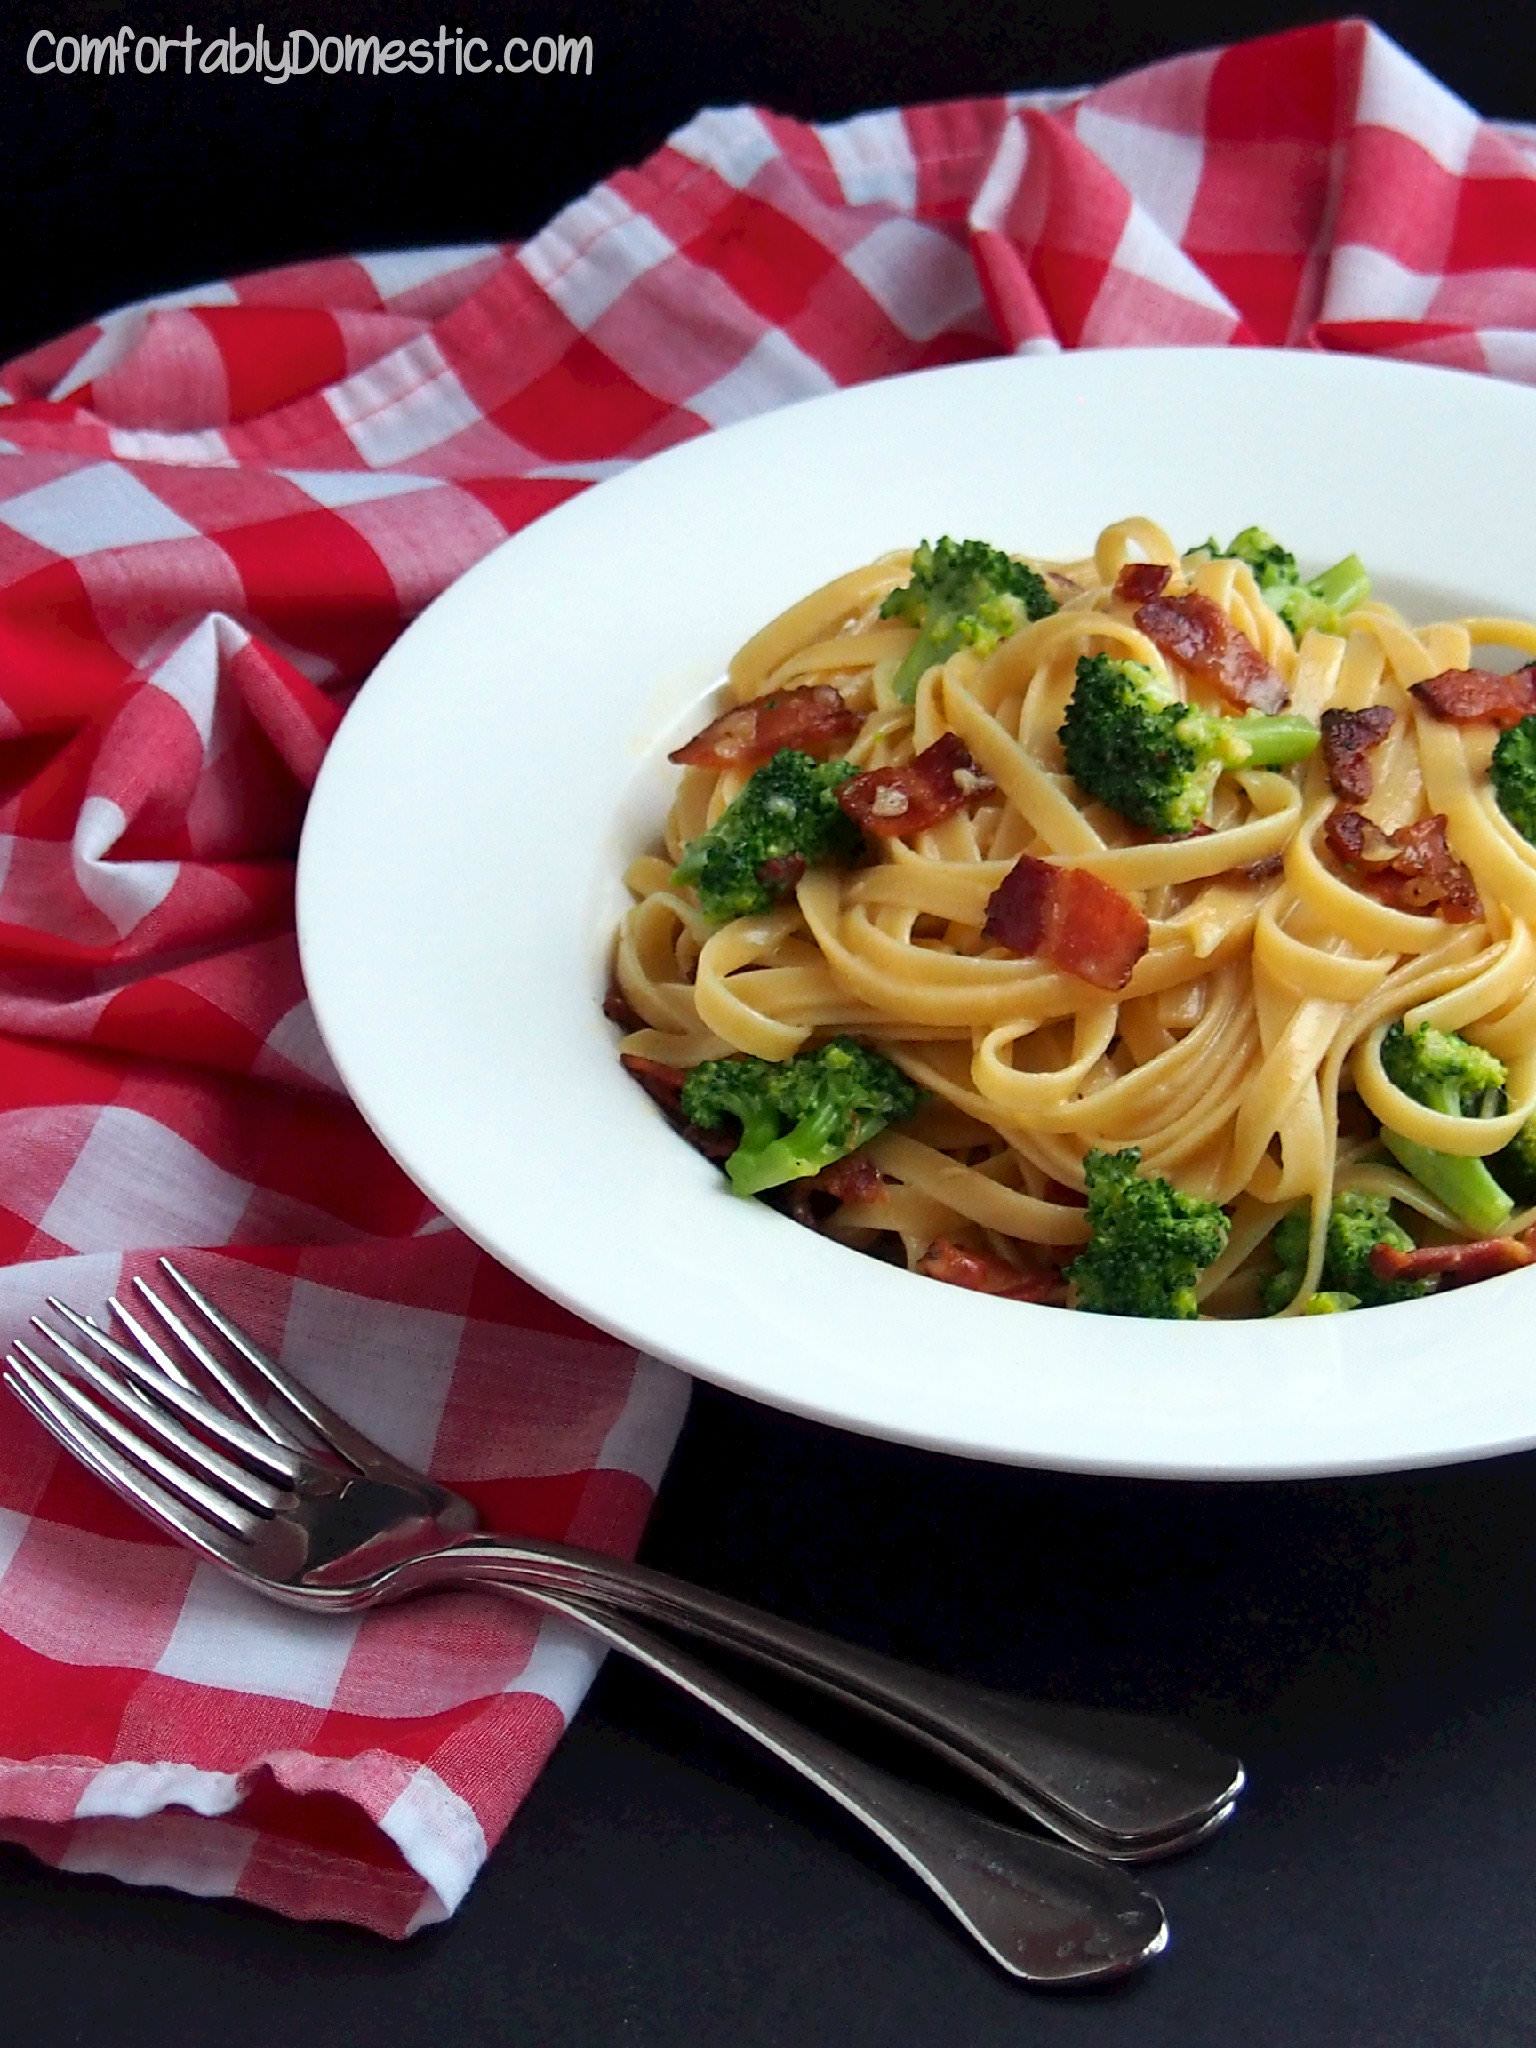 Broccoli Bacon Carbona from ComfortablyDomestic.com is a simple, restaurant quality meal that's ready in 30 minutes.